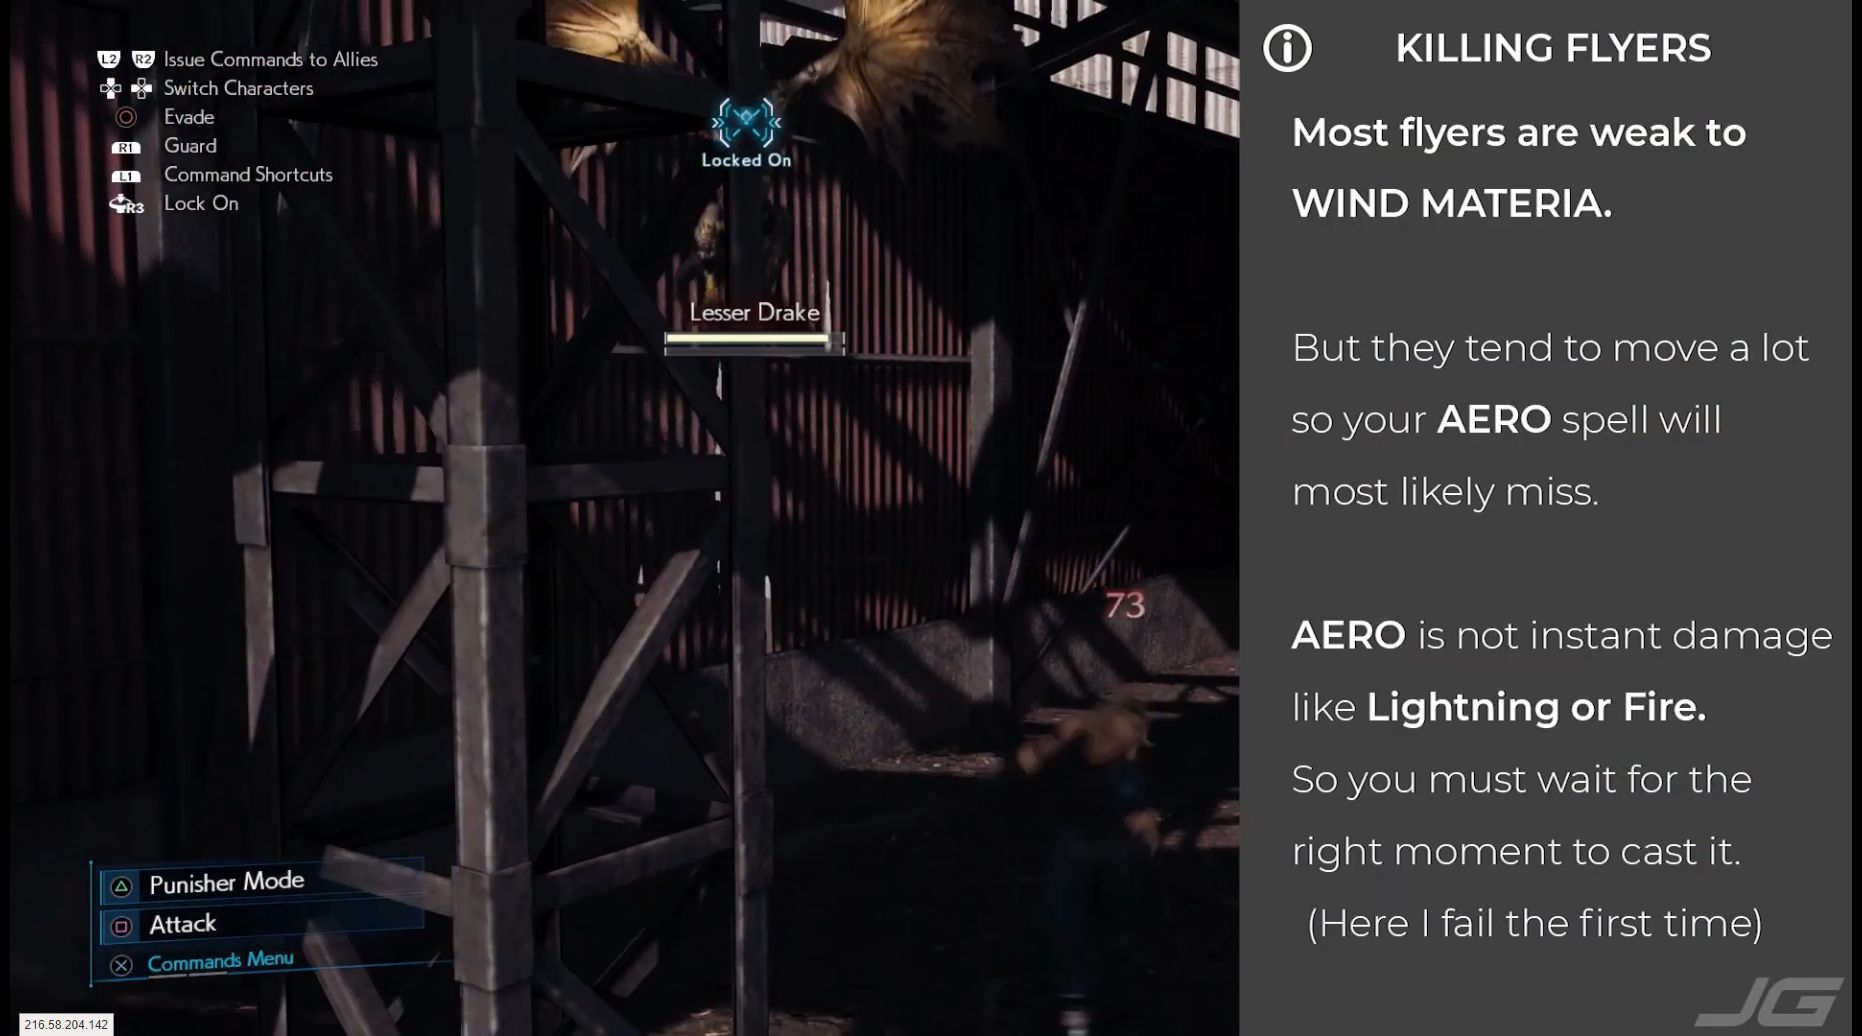 FF7 Remake - Flyers are weak to Wind Materia - But they tend to move a lot and to dodge Aero which is not direct damage like Thunder or Fire - You must wait for the right moment to cast Aero - Here I fail the first time